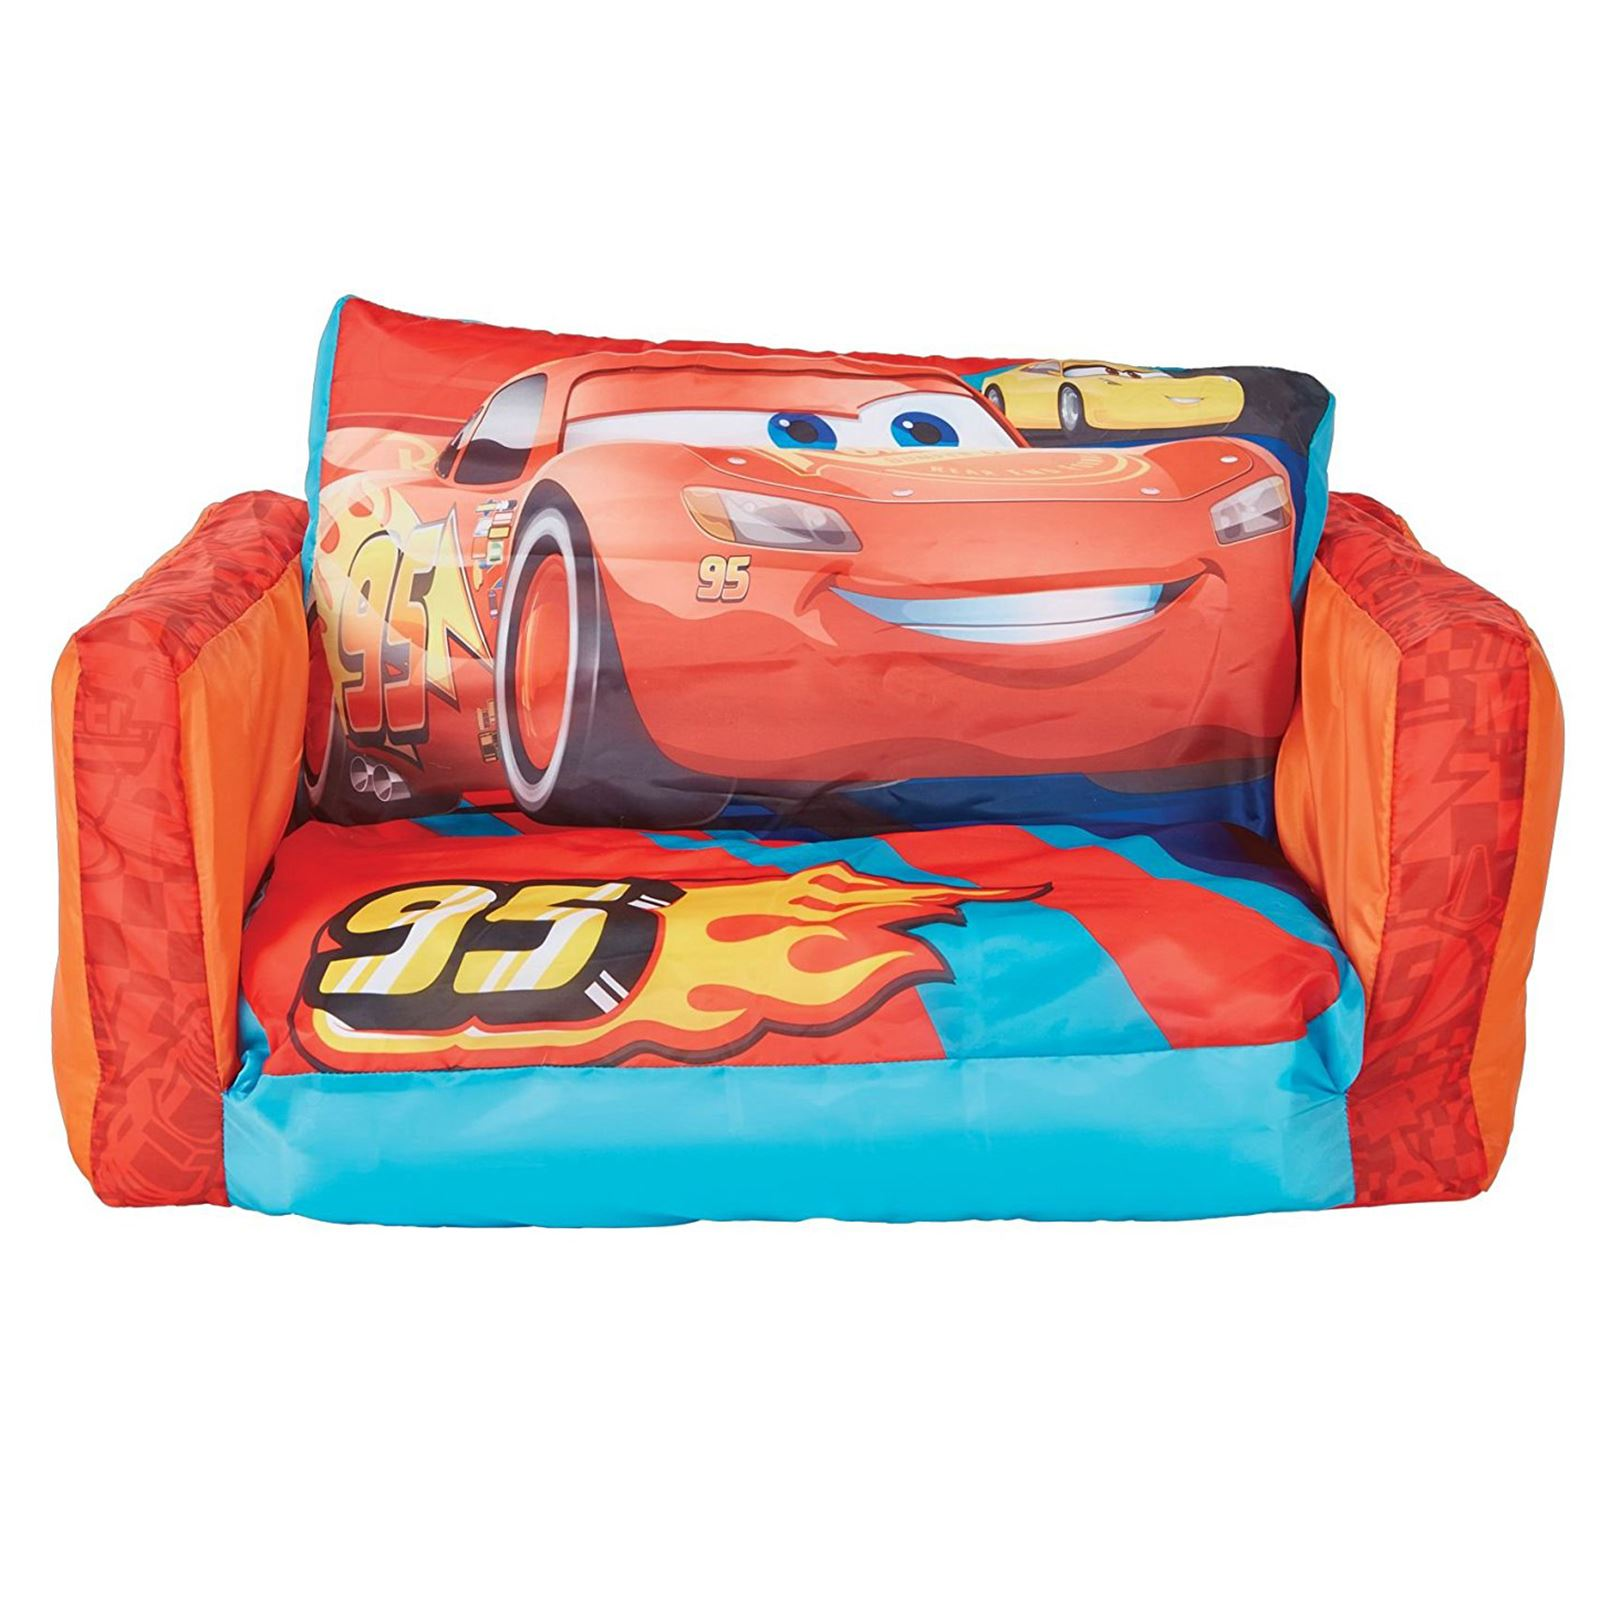 disney cars flip out sofa australia ikea malaysia price 3 lounger 2 in 1 inflatable kids childrens